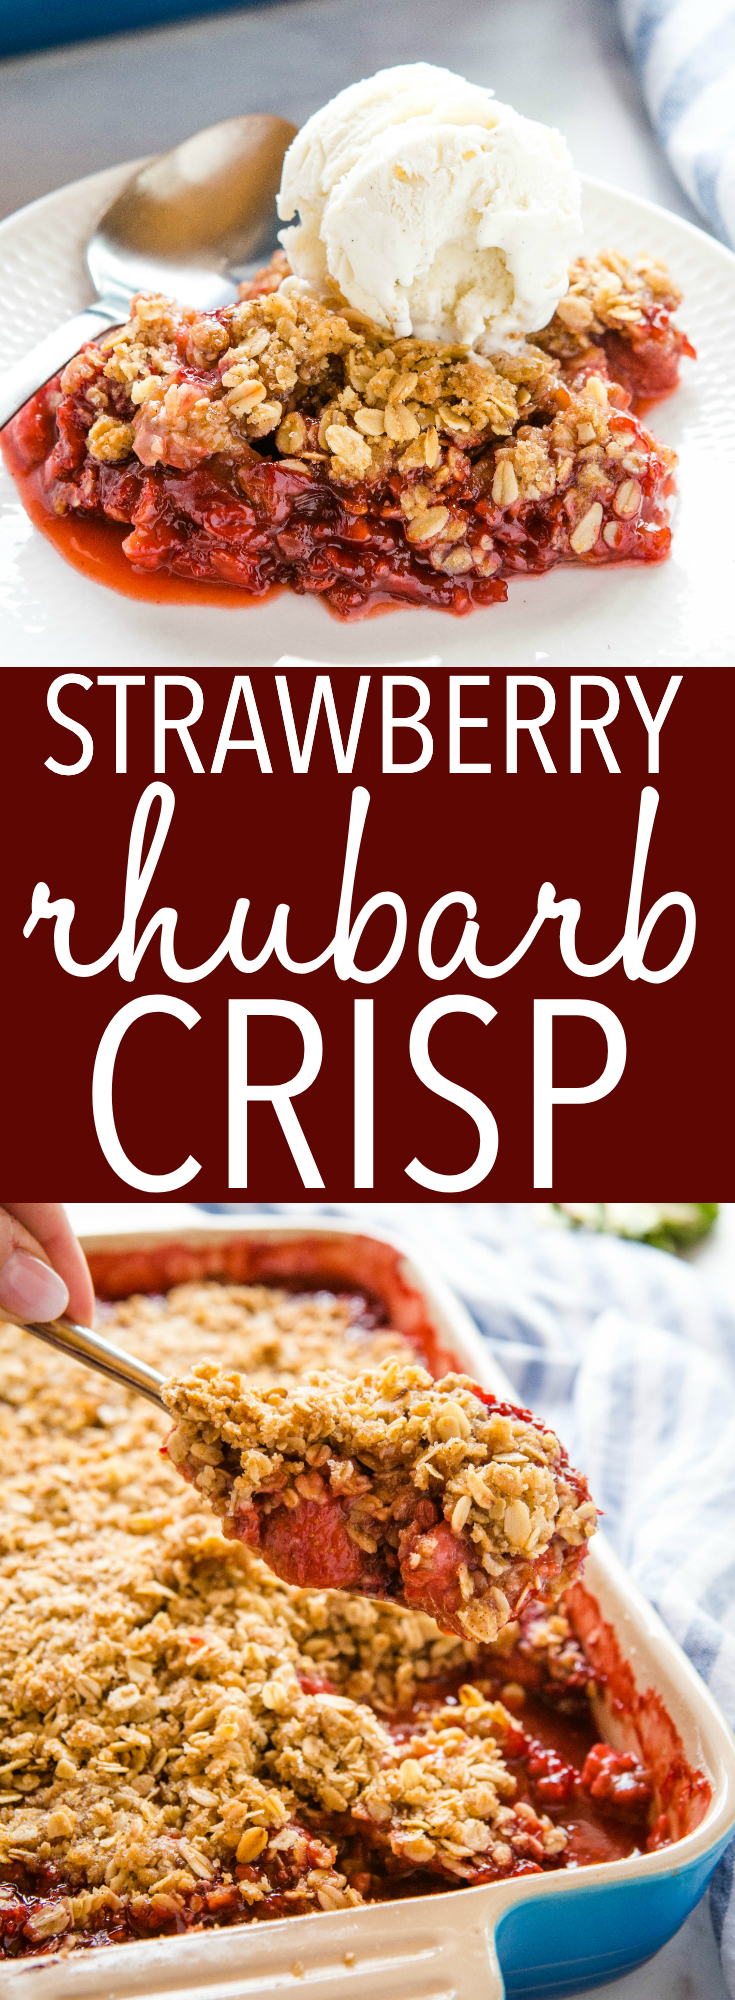 This Strawberry Rhubarb Crisp is the perfect simple summer dessert featuring fresh juicy strawberries and fresh rhubarb! A healthier dessert that's easy to make gluten-free! Recipe from thebusybaker.ca! #strawberryrhubarb #strawberry #dessert #summer #easydessert #healthy #glutenfreedessert #fruitcrisp #cobbler via @busybakerblog